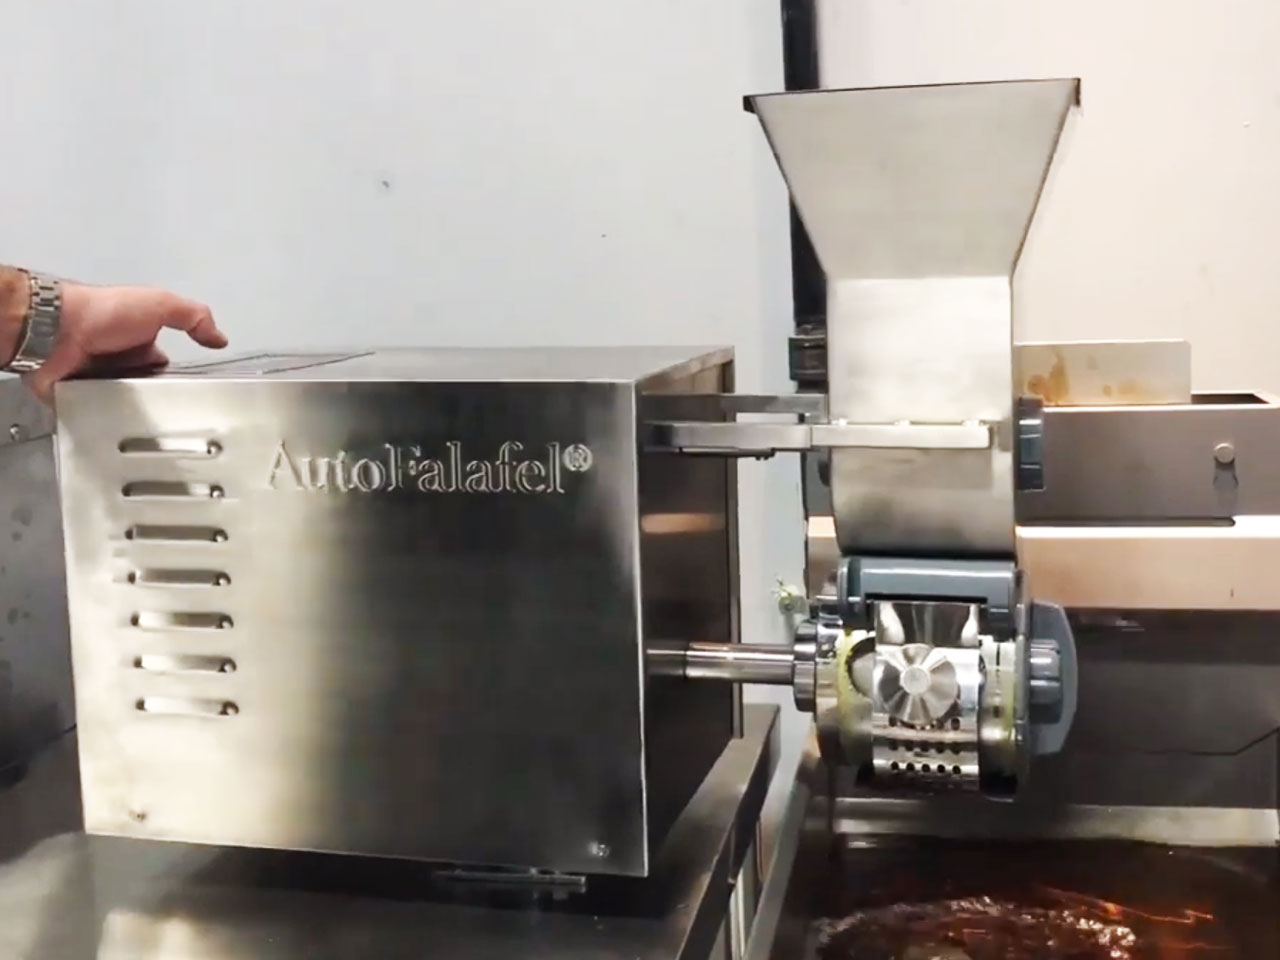 AutoFalafel Machine